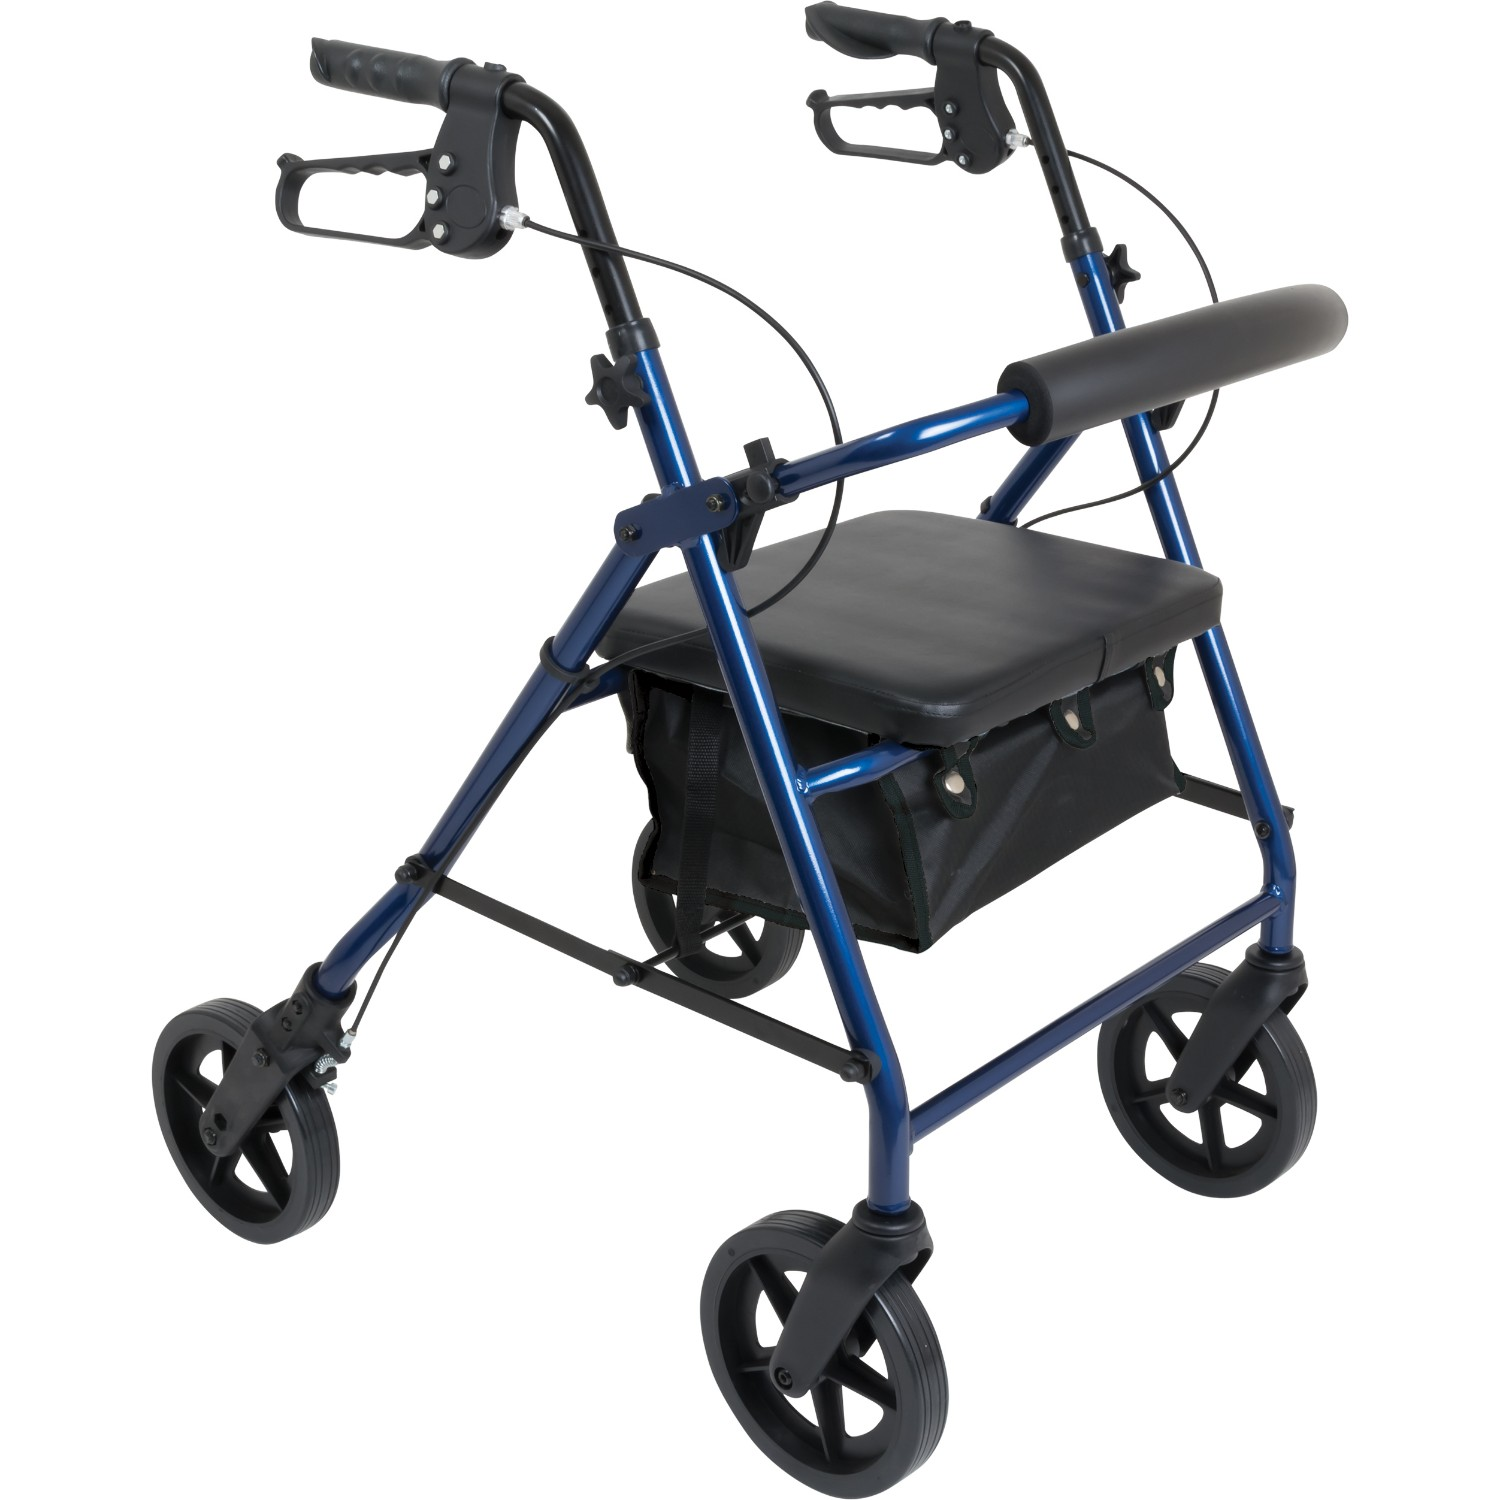 Deluxe Rollator with Padded Seat, 8-inch Wheels Blue